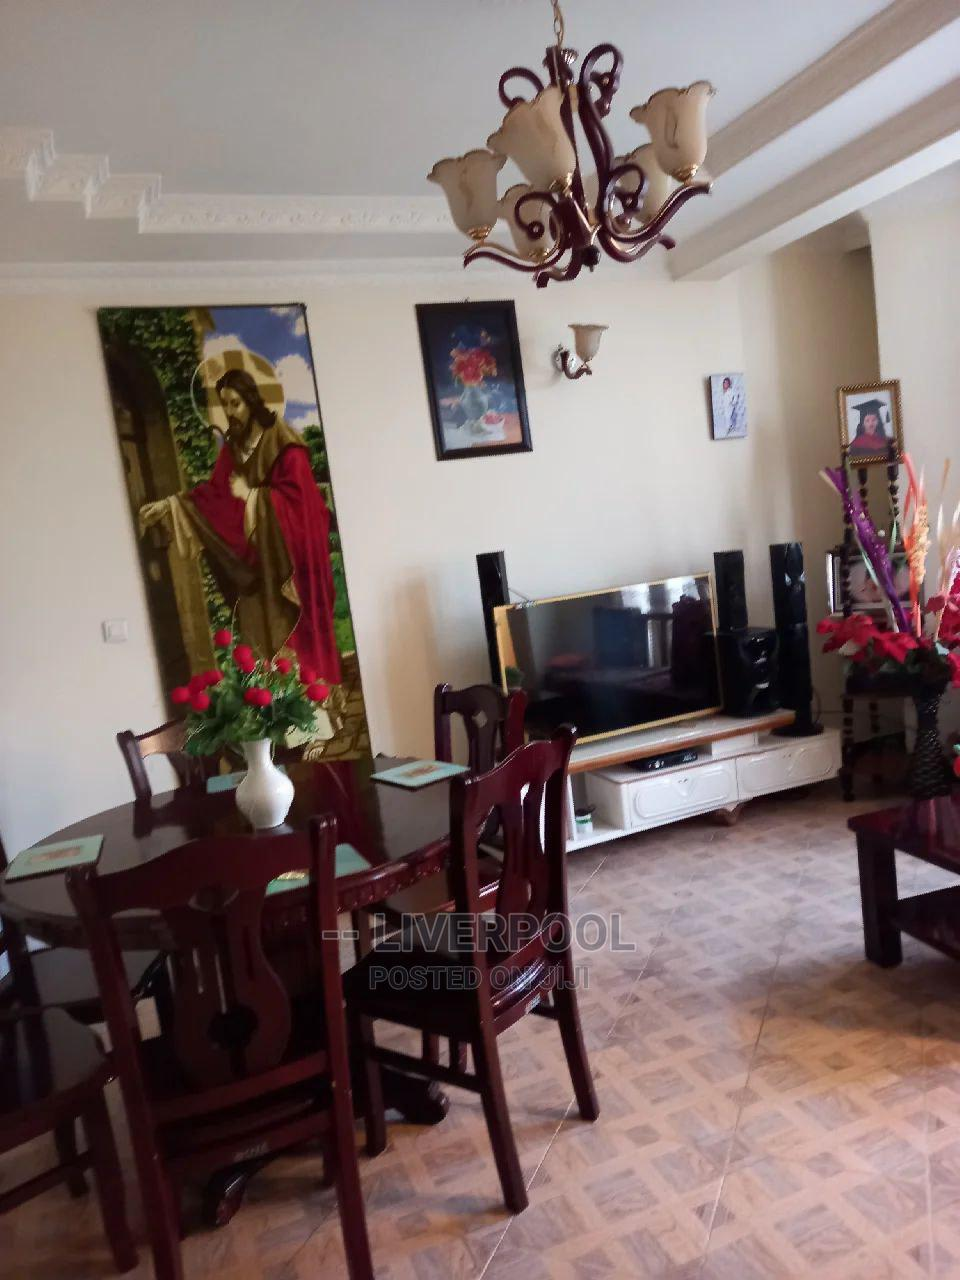 Furnished 4bdrm House in X, Bole for Sale | Houses & Apartments For Sale for sale in Bole, Addis Ababa, Ethiopia